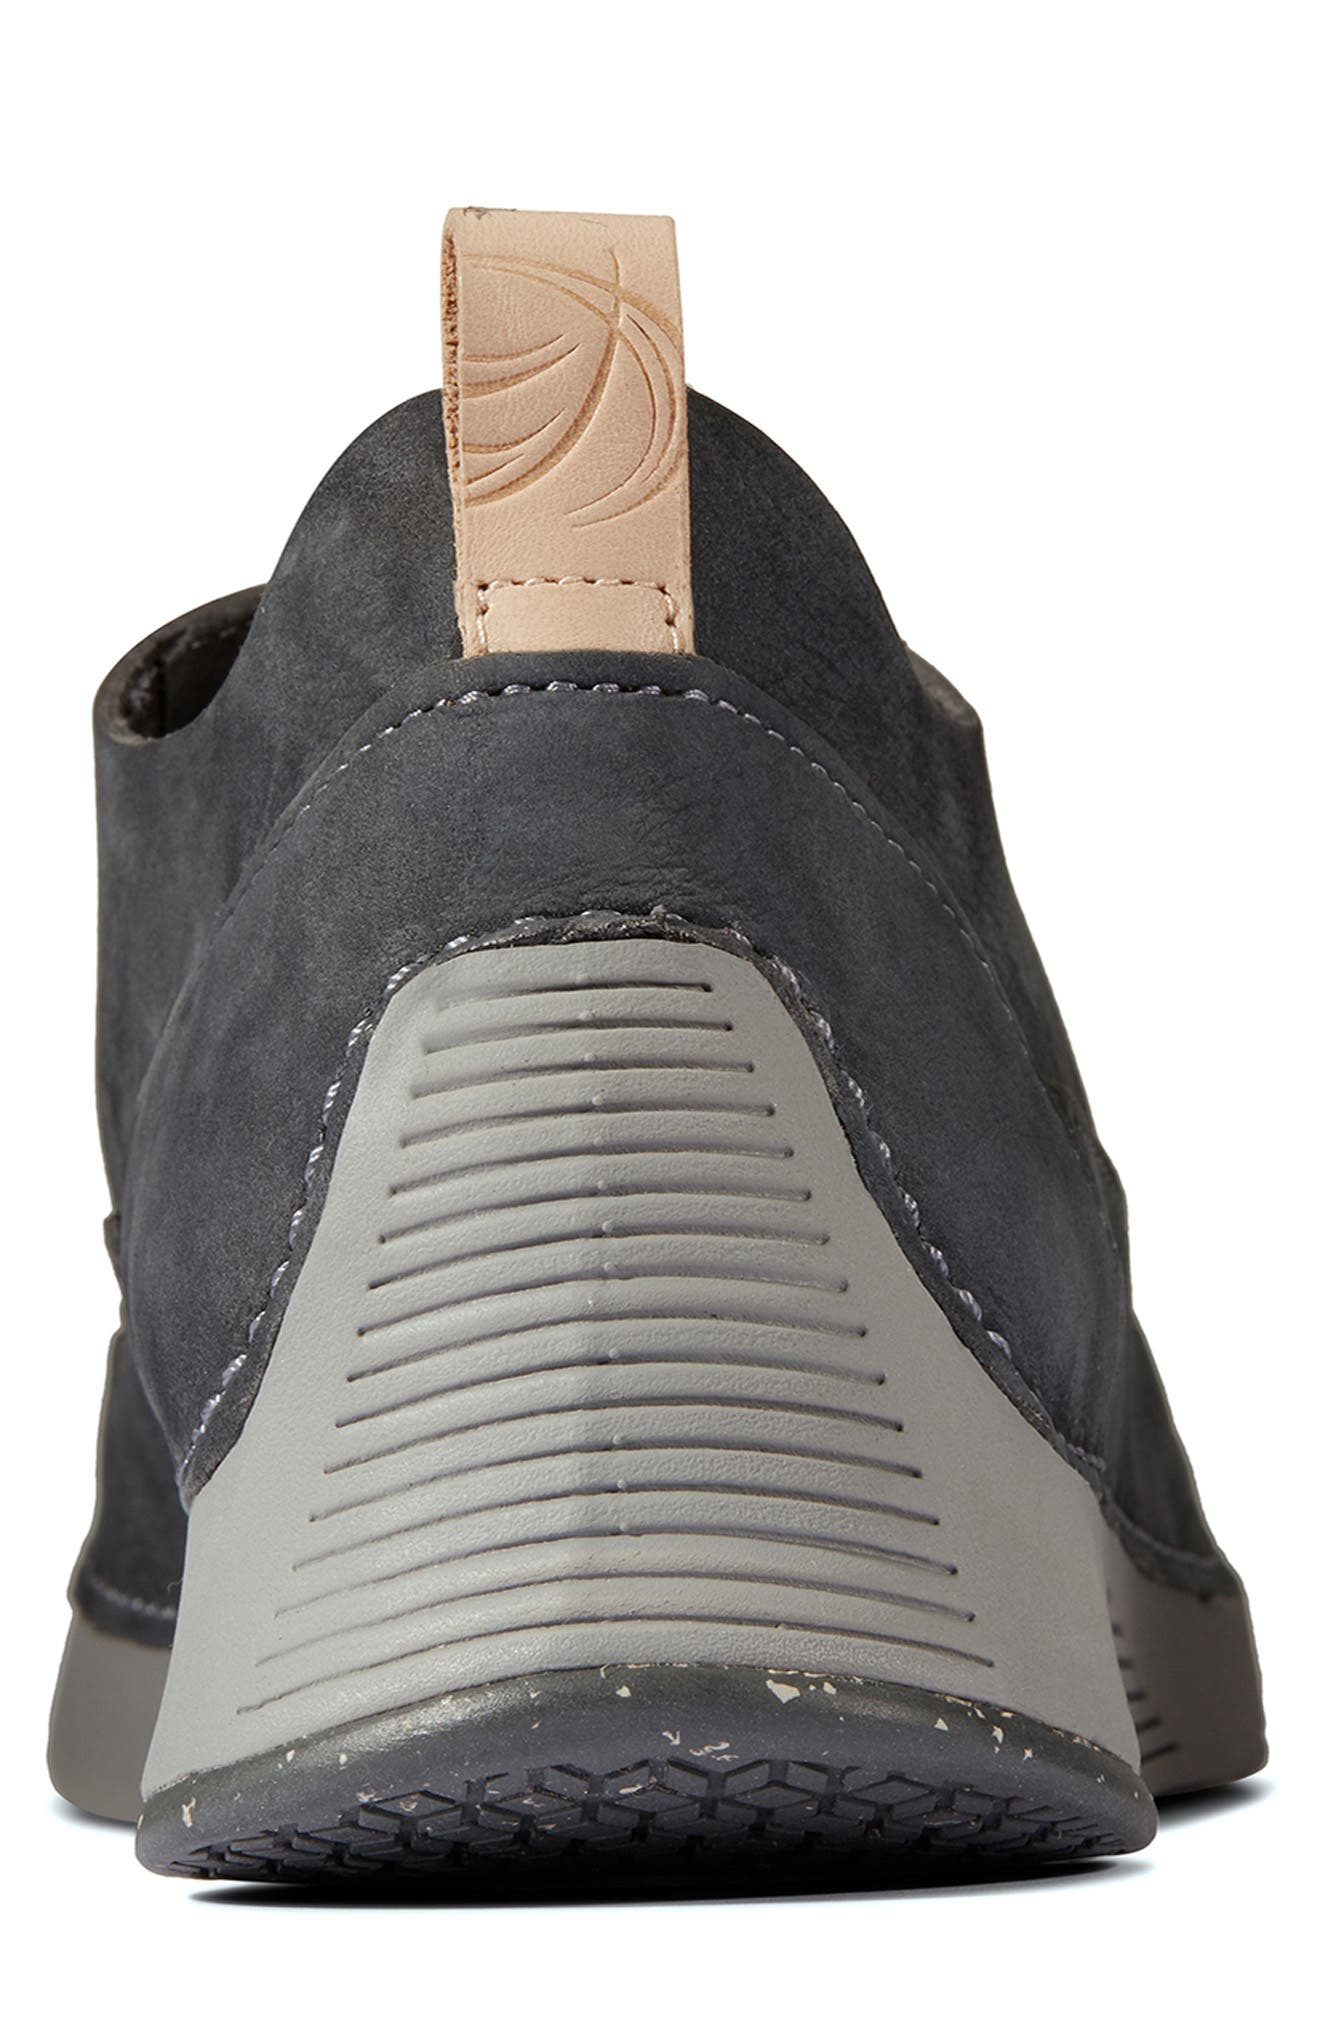 Tri Active Run Sneaker,                             Alternate thumbnail 4, color,                             GREY LEATHER